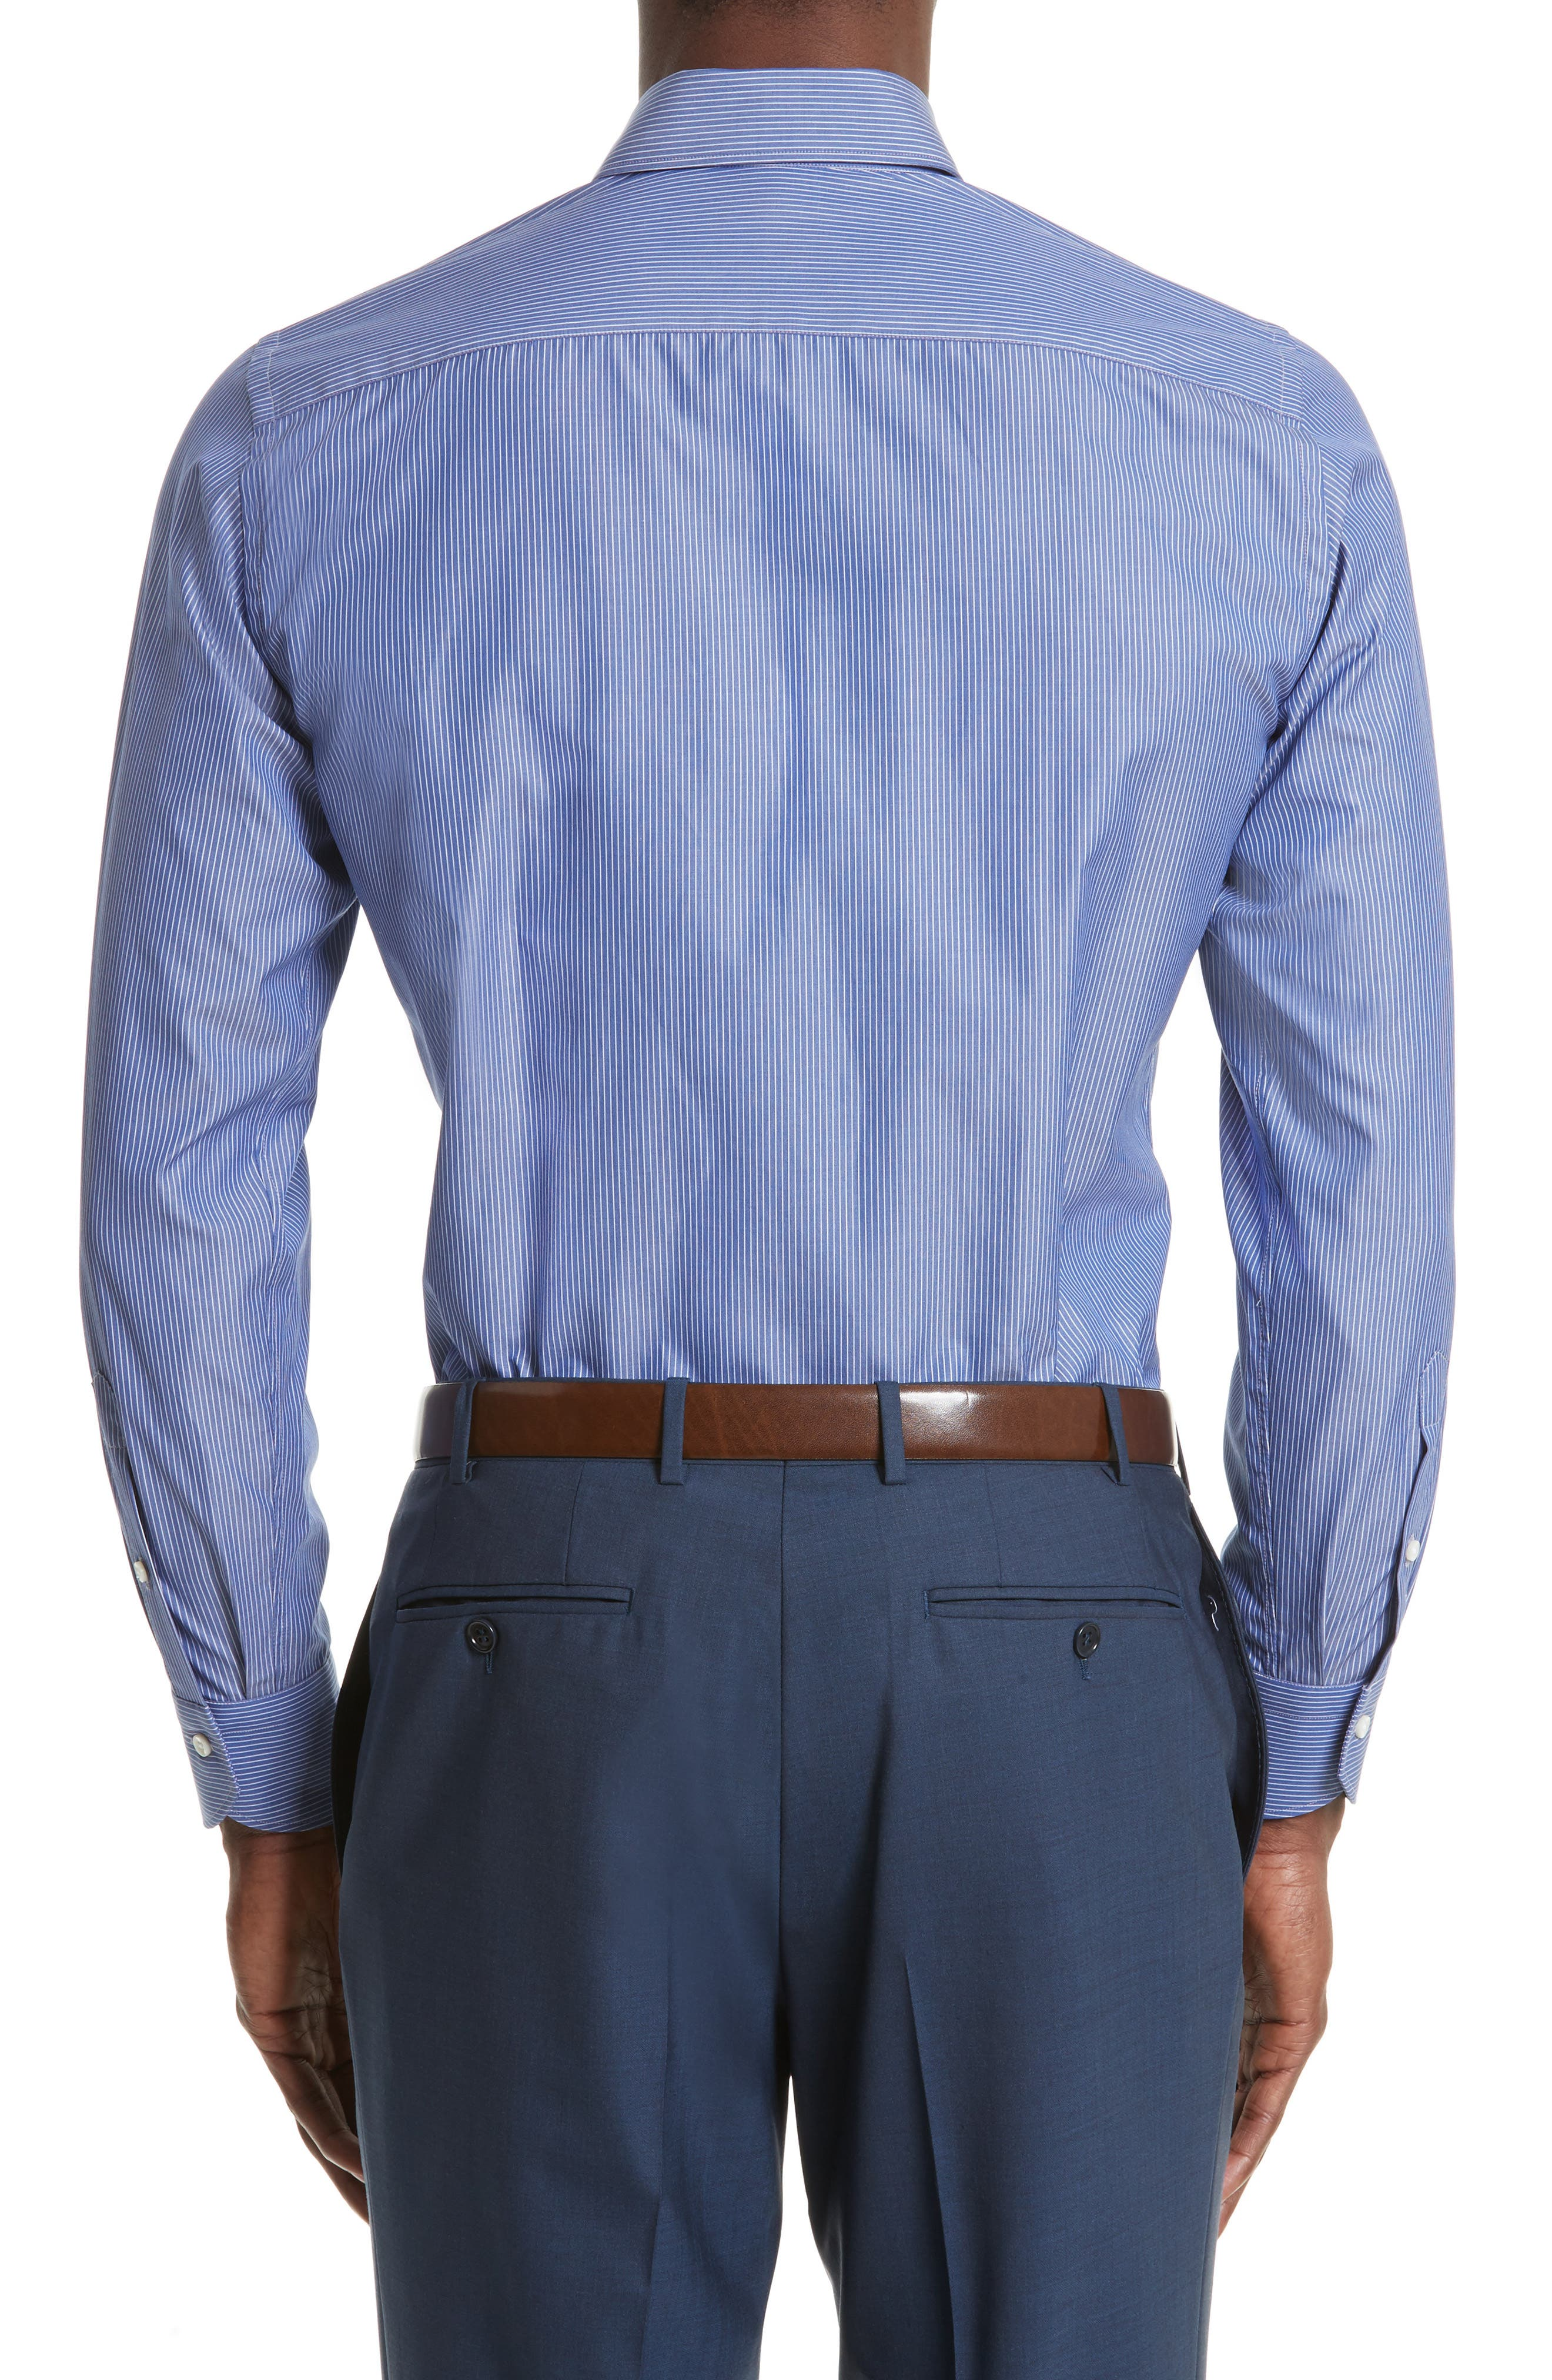 Regular Fit Stripe Dress Shirt,                             Alternate thumbnail 2, color,                             420